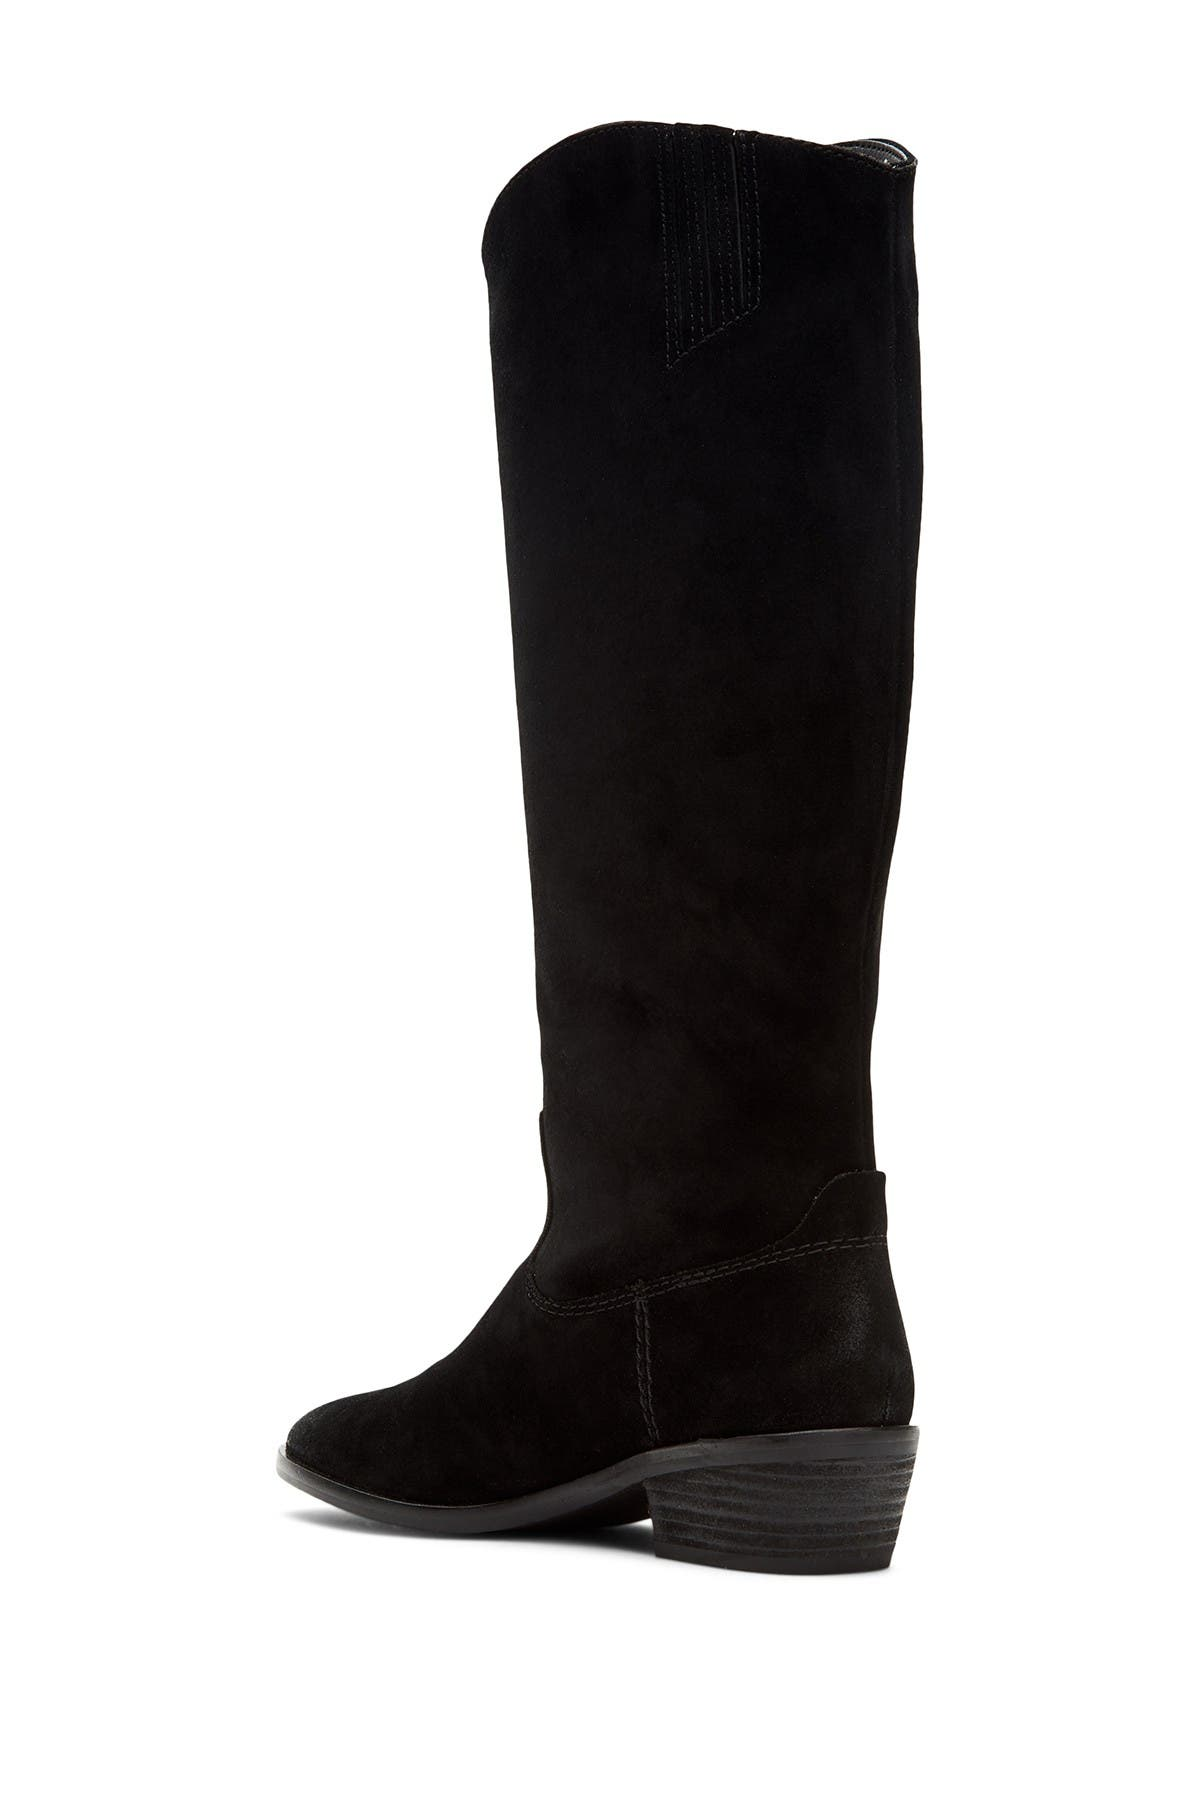 Frye & Co Caden Stitch Suede Tall Boot